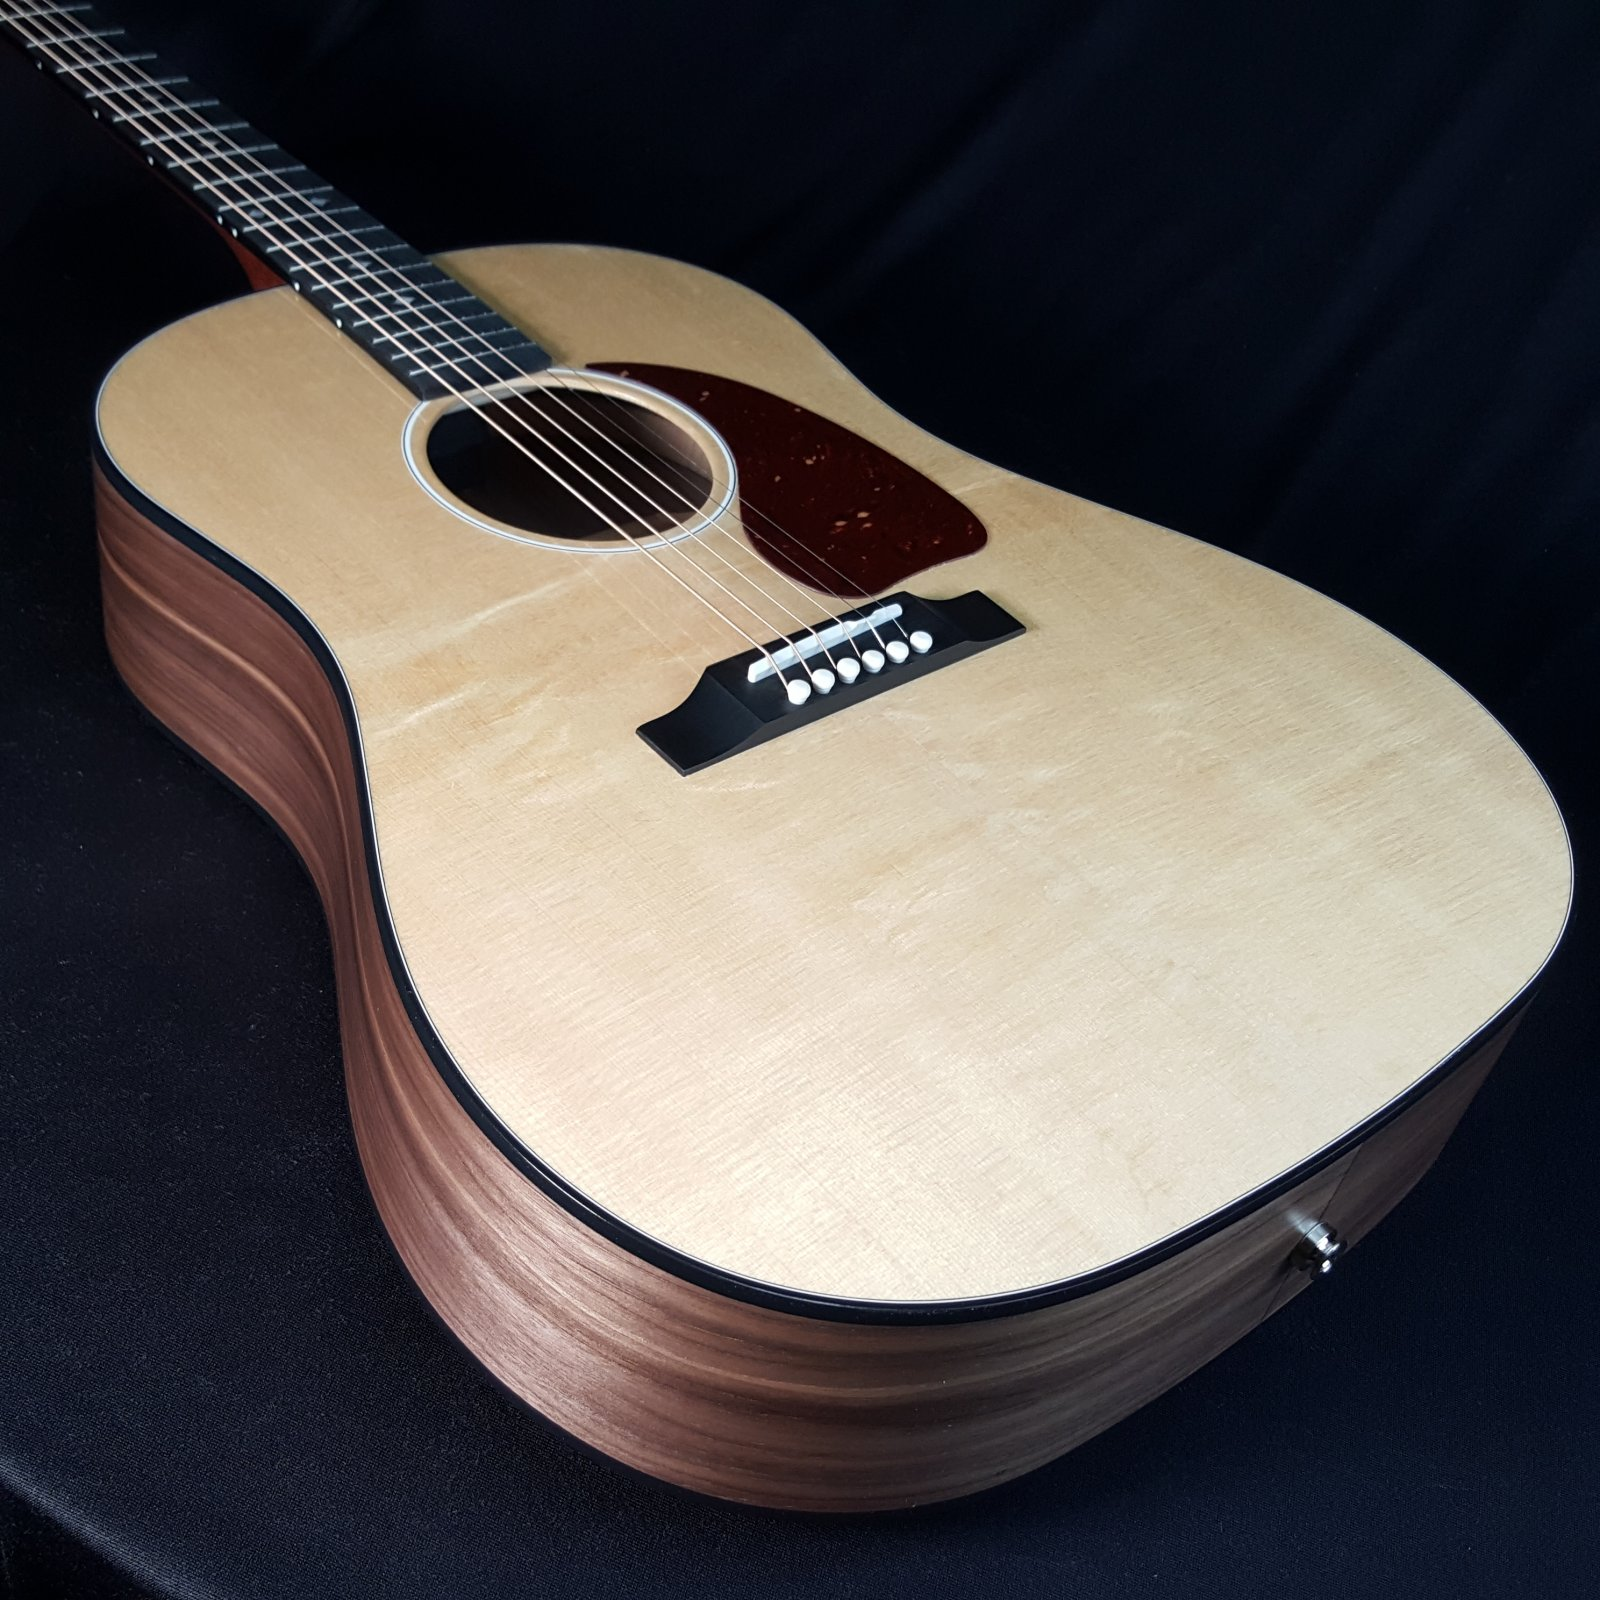 Gibson G-45 Standard Electric Acoustic Guitar Natural with Case